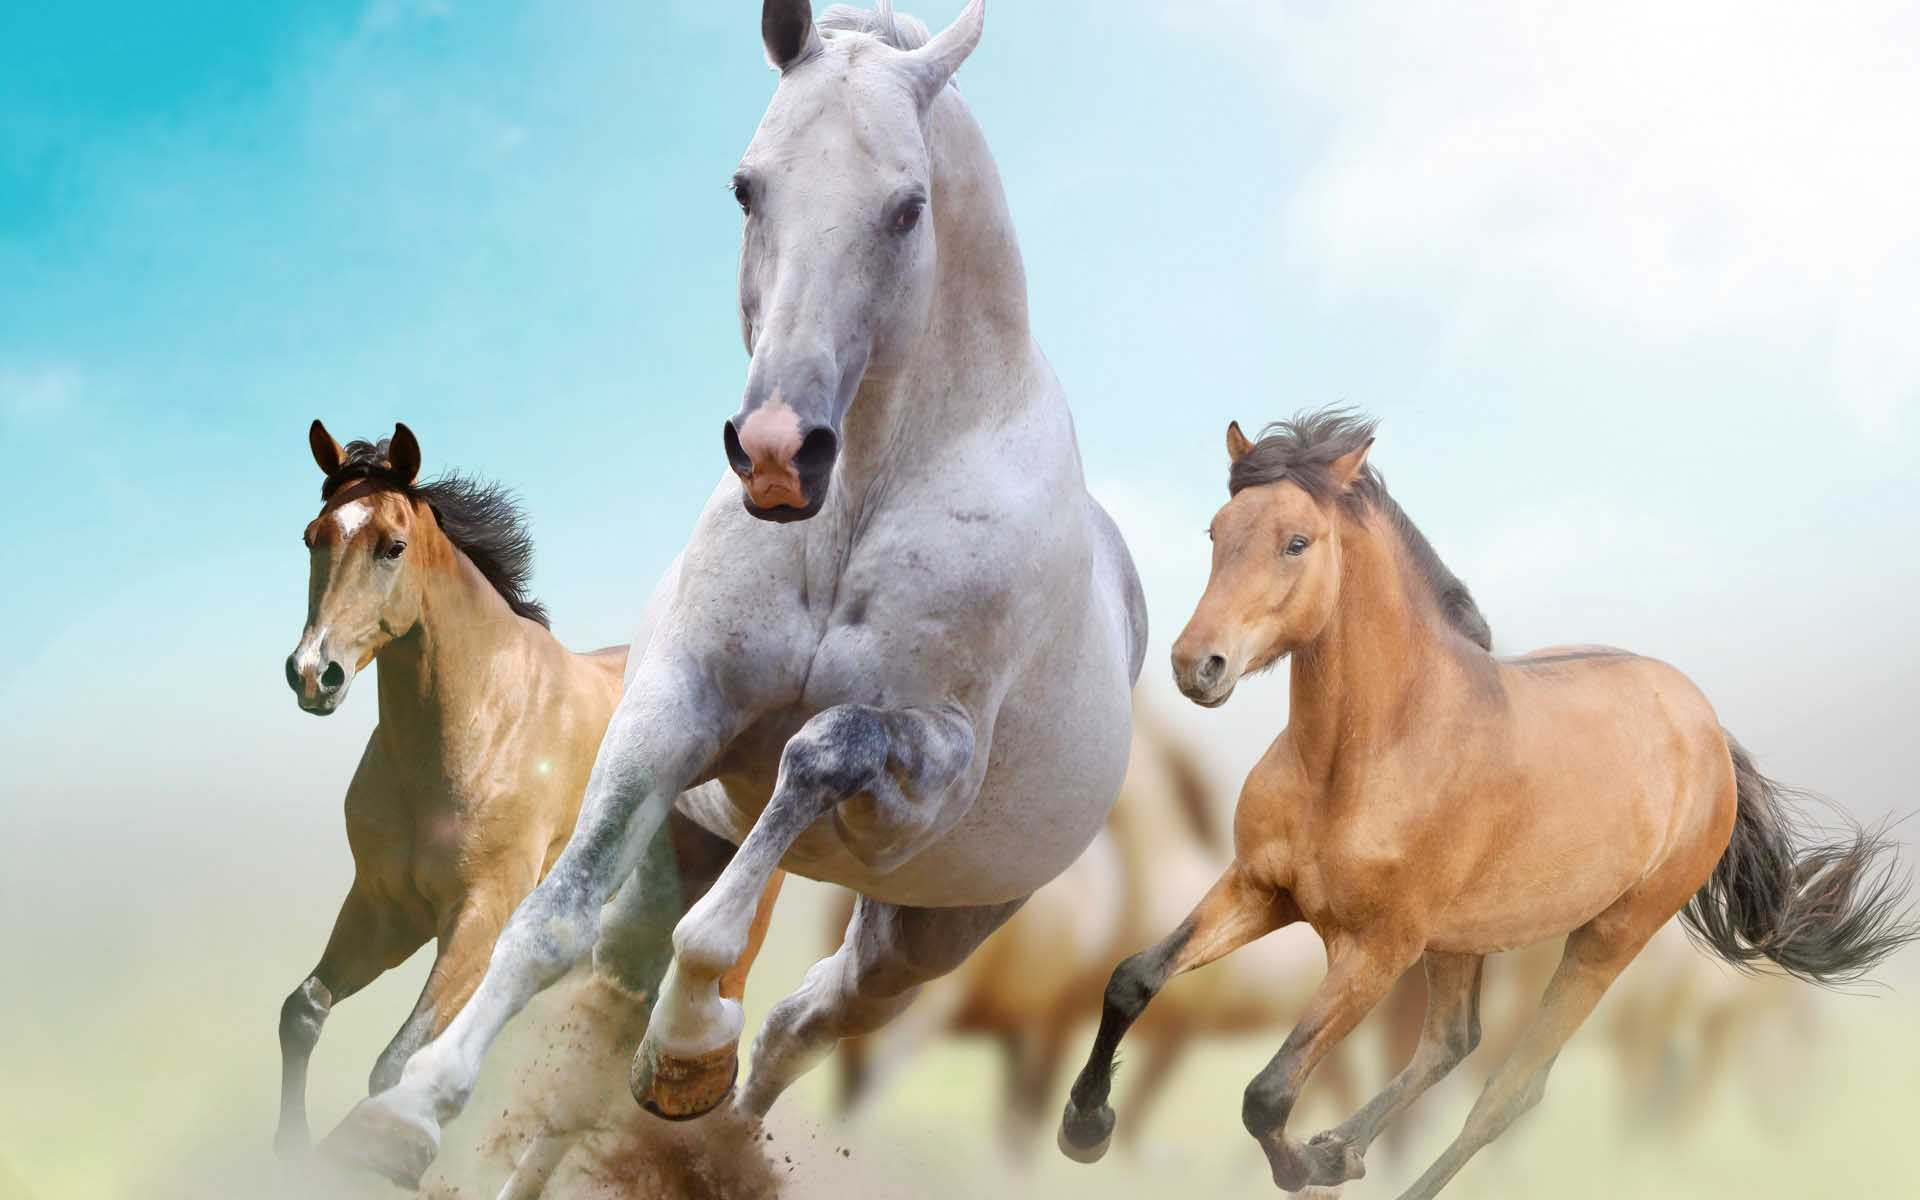 Beautiful Horses Wallpaper Find tall and beautiful